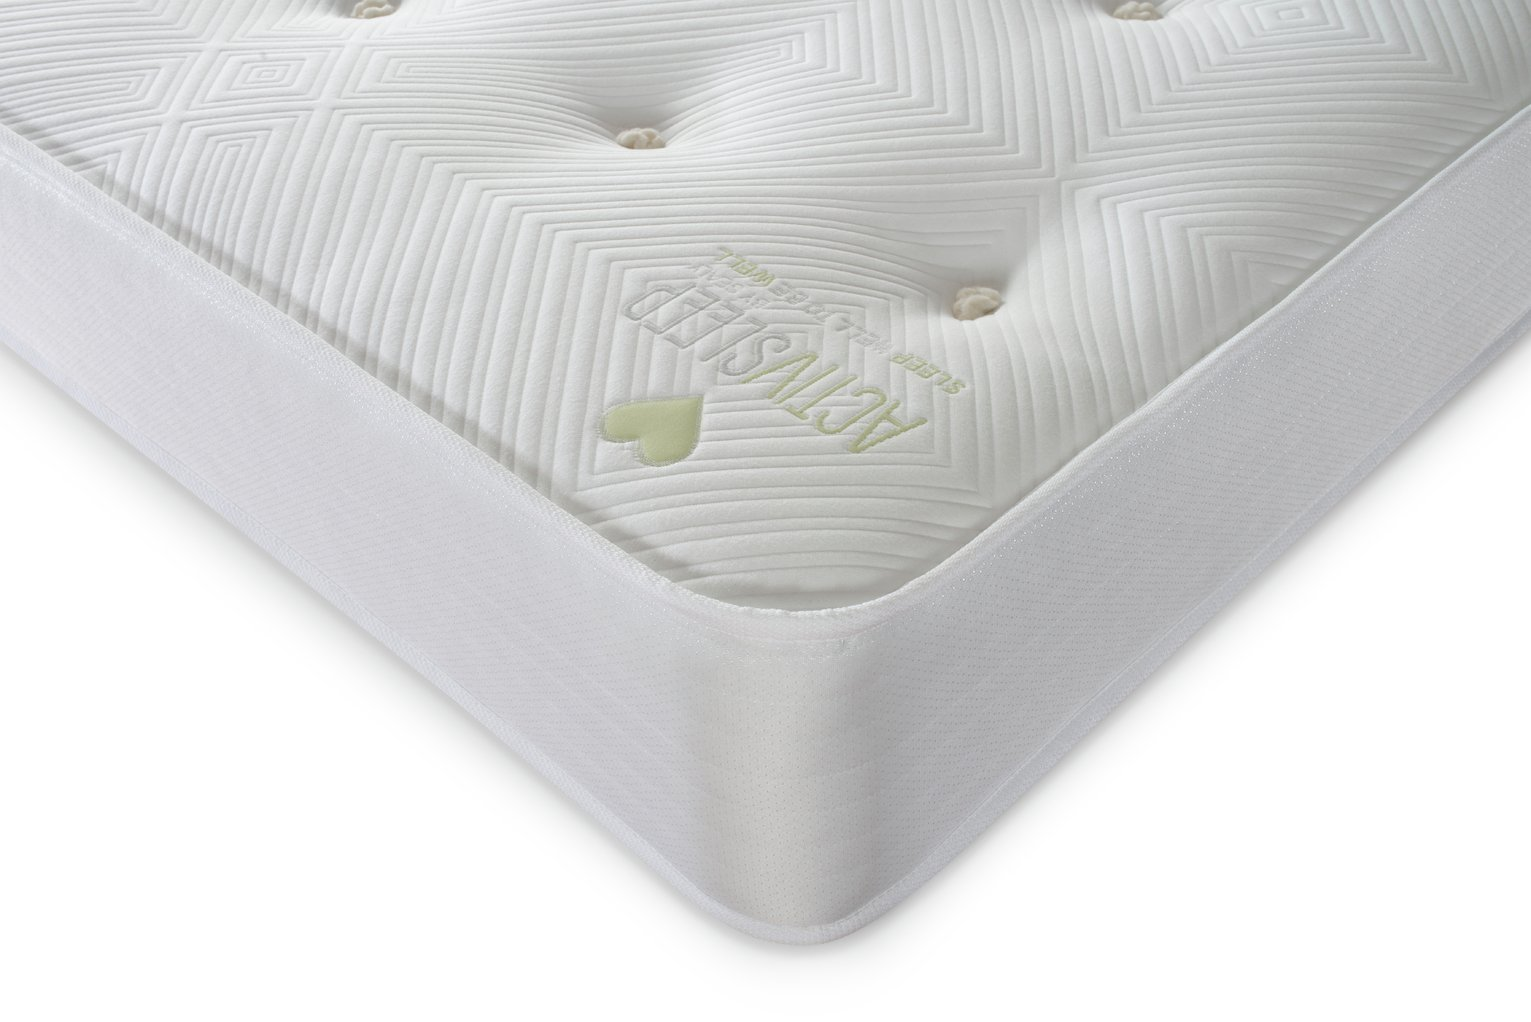 Sealy Activ Orthopedic Single Mattress